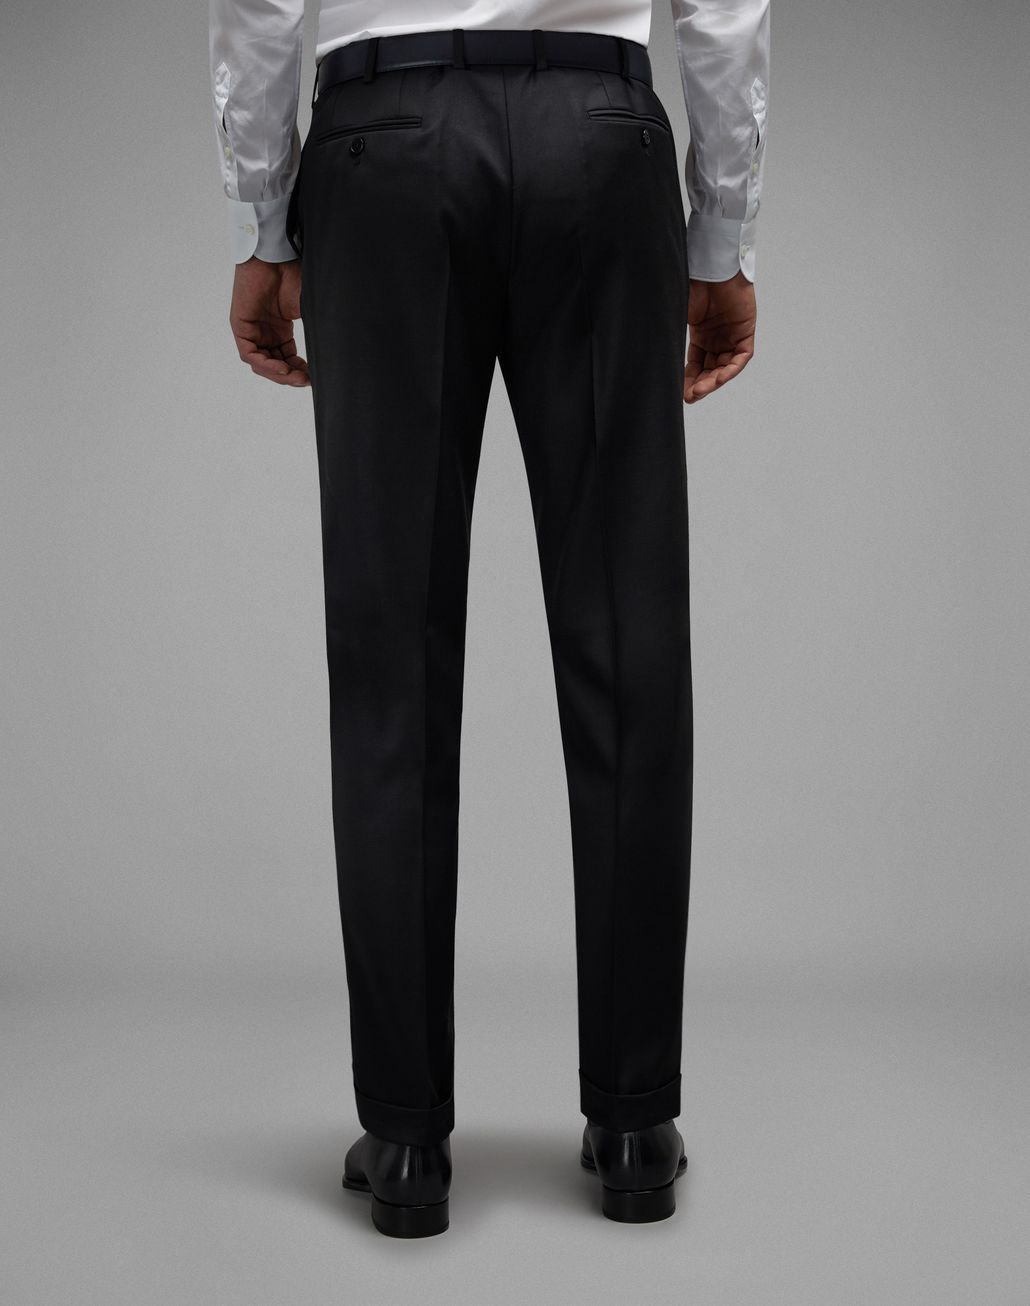 BRIONI 'Essential' Black Tigullio Trousers Trousers [*** pickupInStoreShippingNotGuaranteed_info ***] d